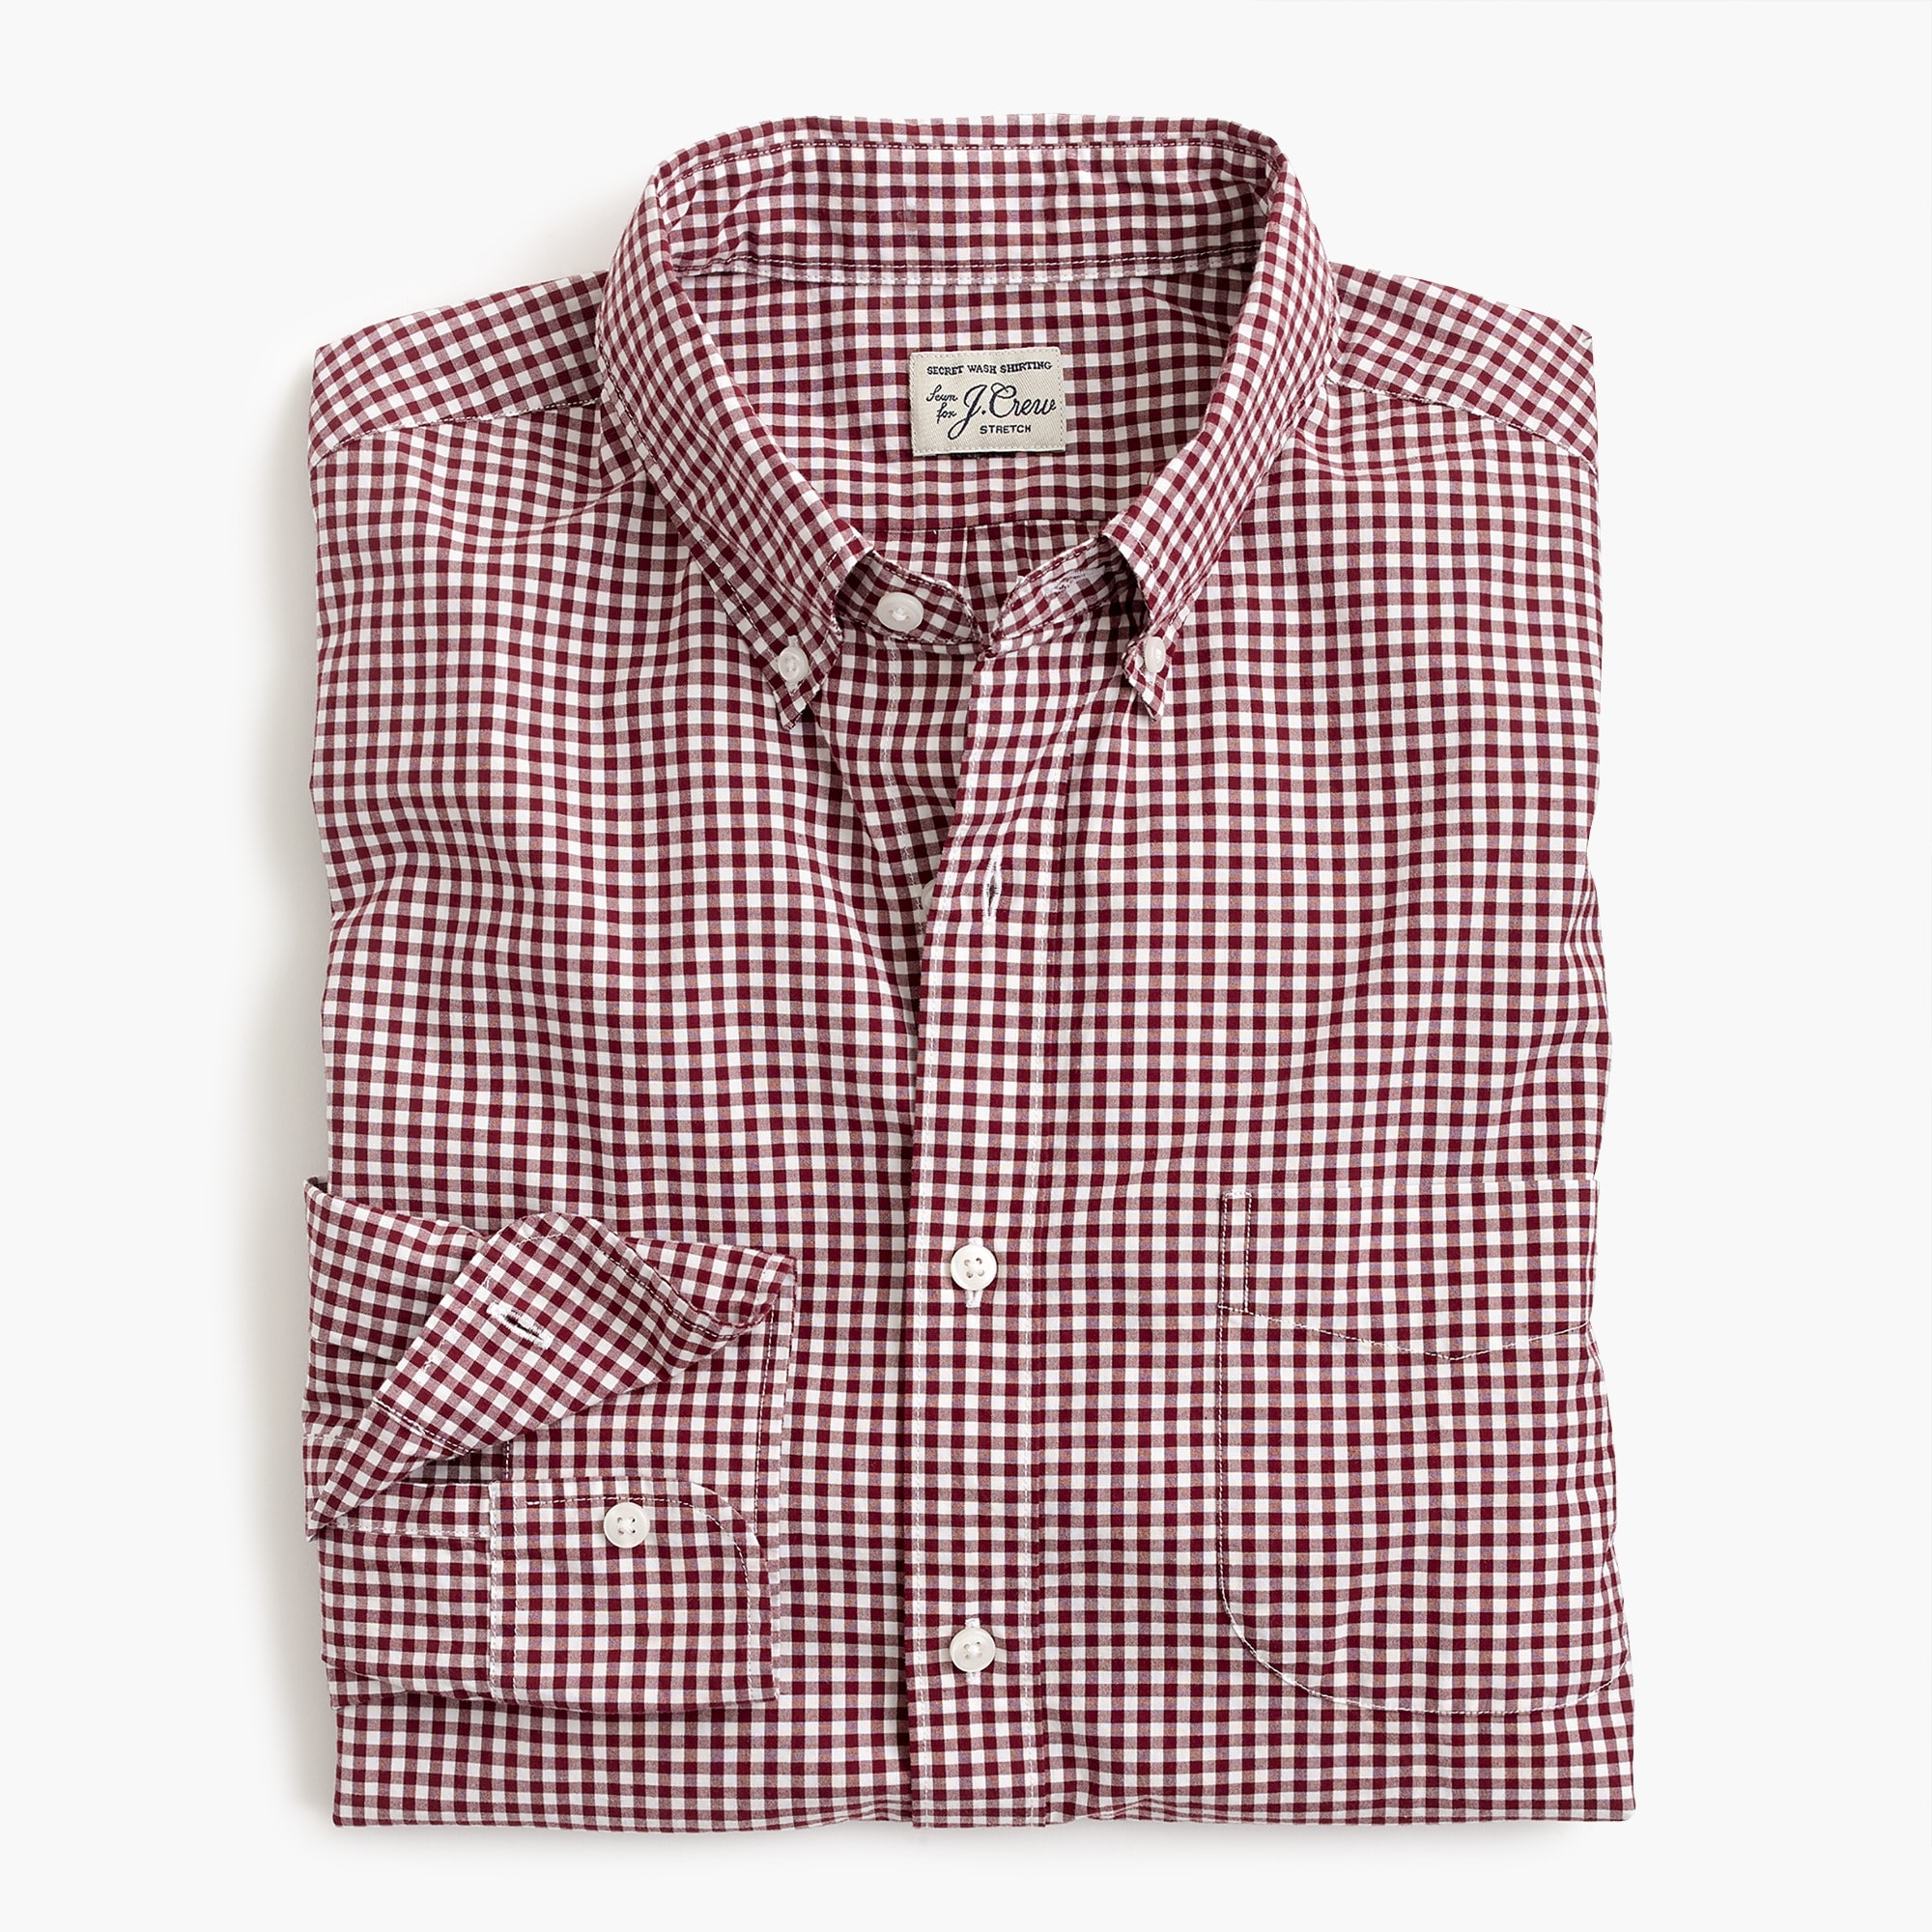 Tall stretch Secret Wash shirt in gingham poplin